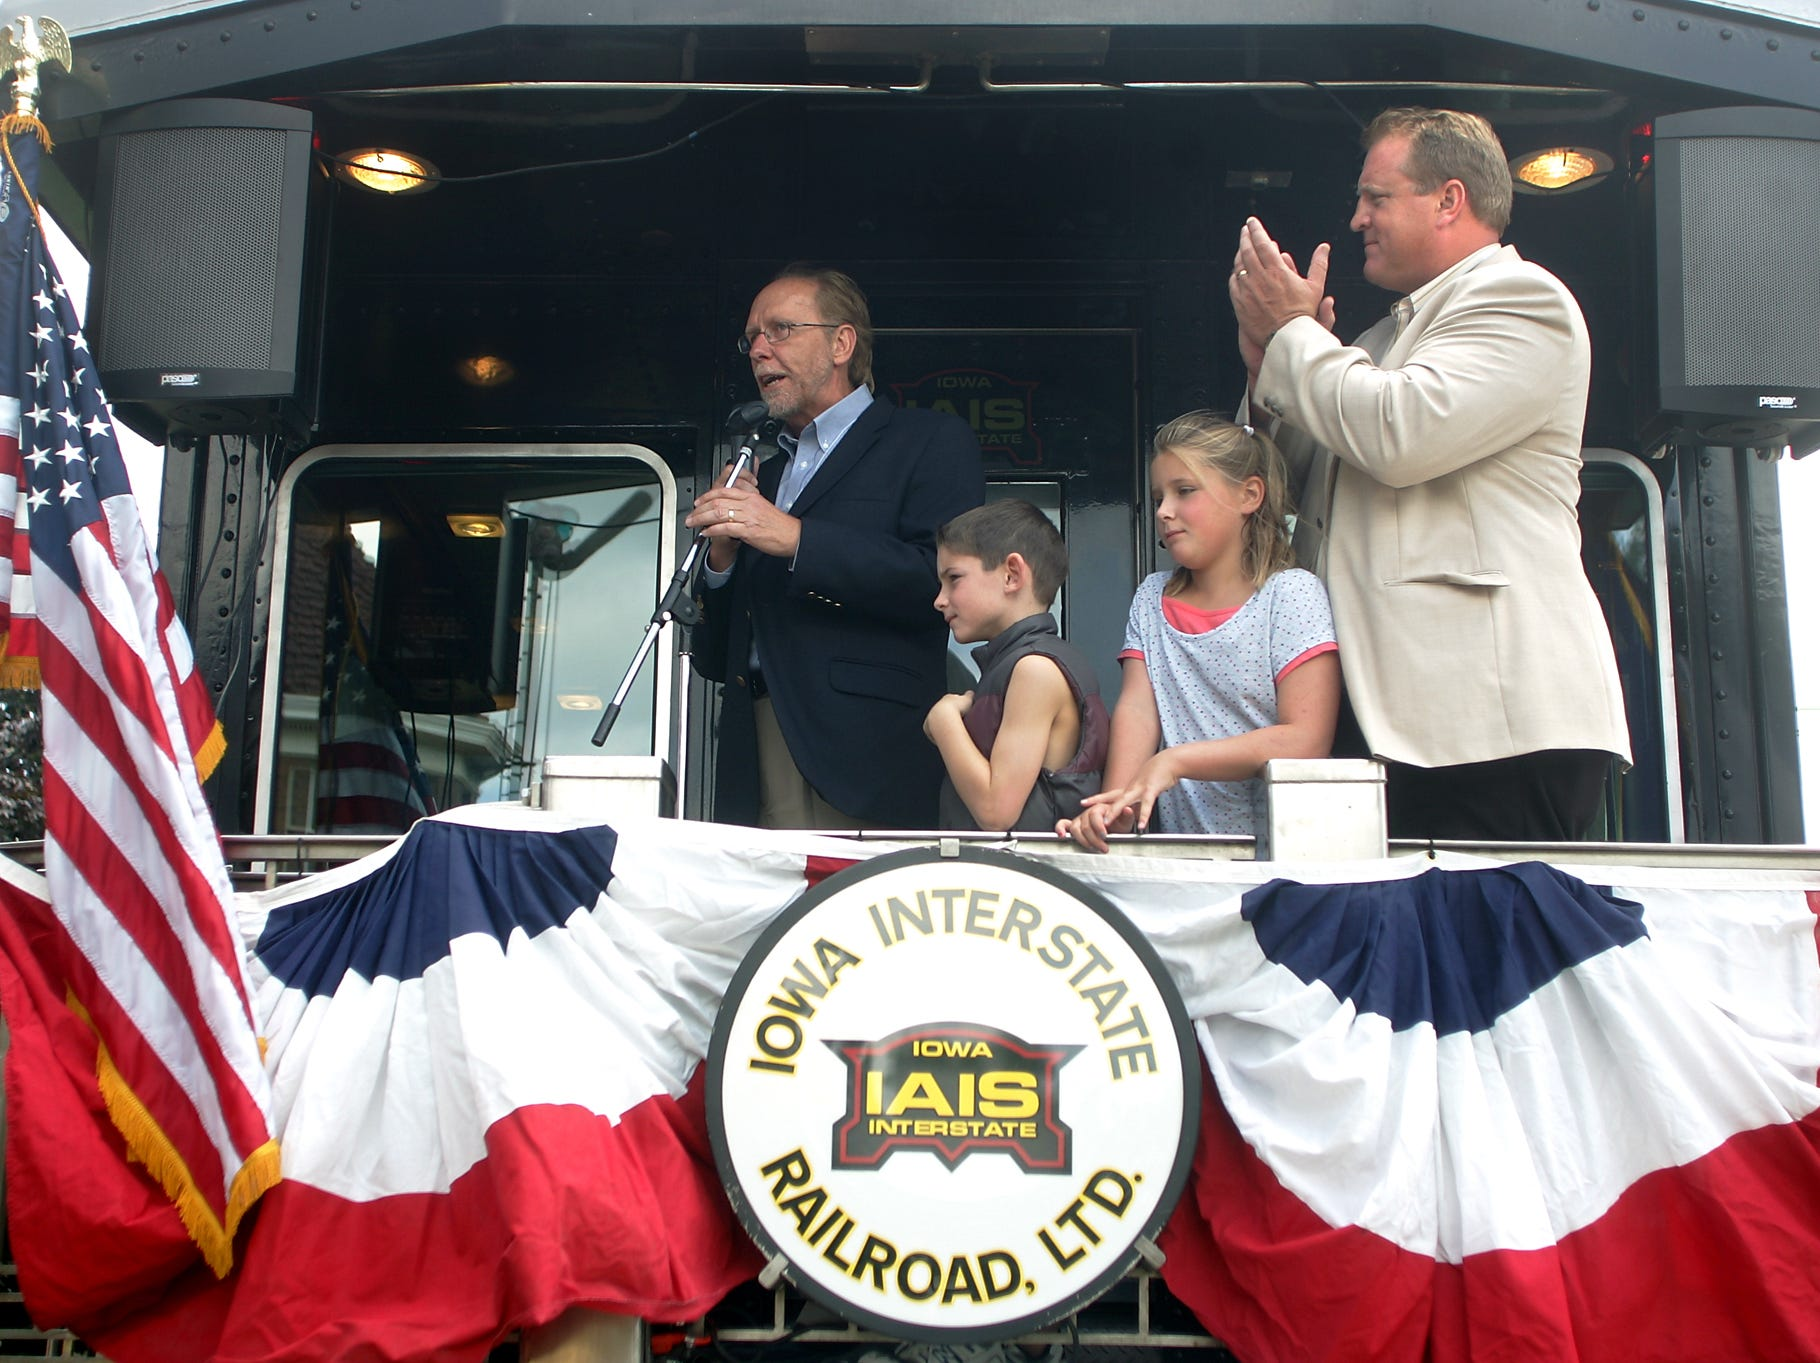 Iowa Gov. Chet Culver, right, claps as he and his children, John and Clare Culver, listen to U.S. Rep. Dave Loebsack (D-Iowa), left, speak at a stop in Iowa City, Iowa, during a train tour to promote plans for passenger rail service to Chicago on Sunday, July 26, 2009.